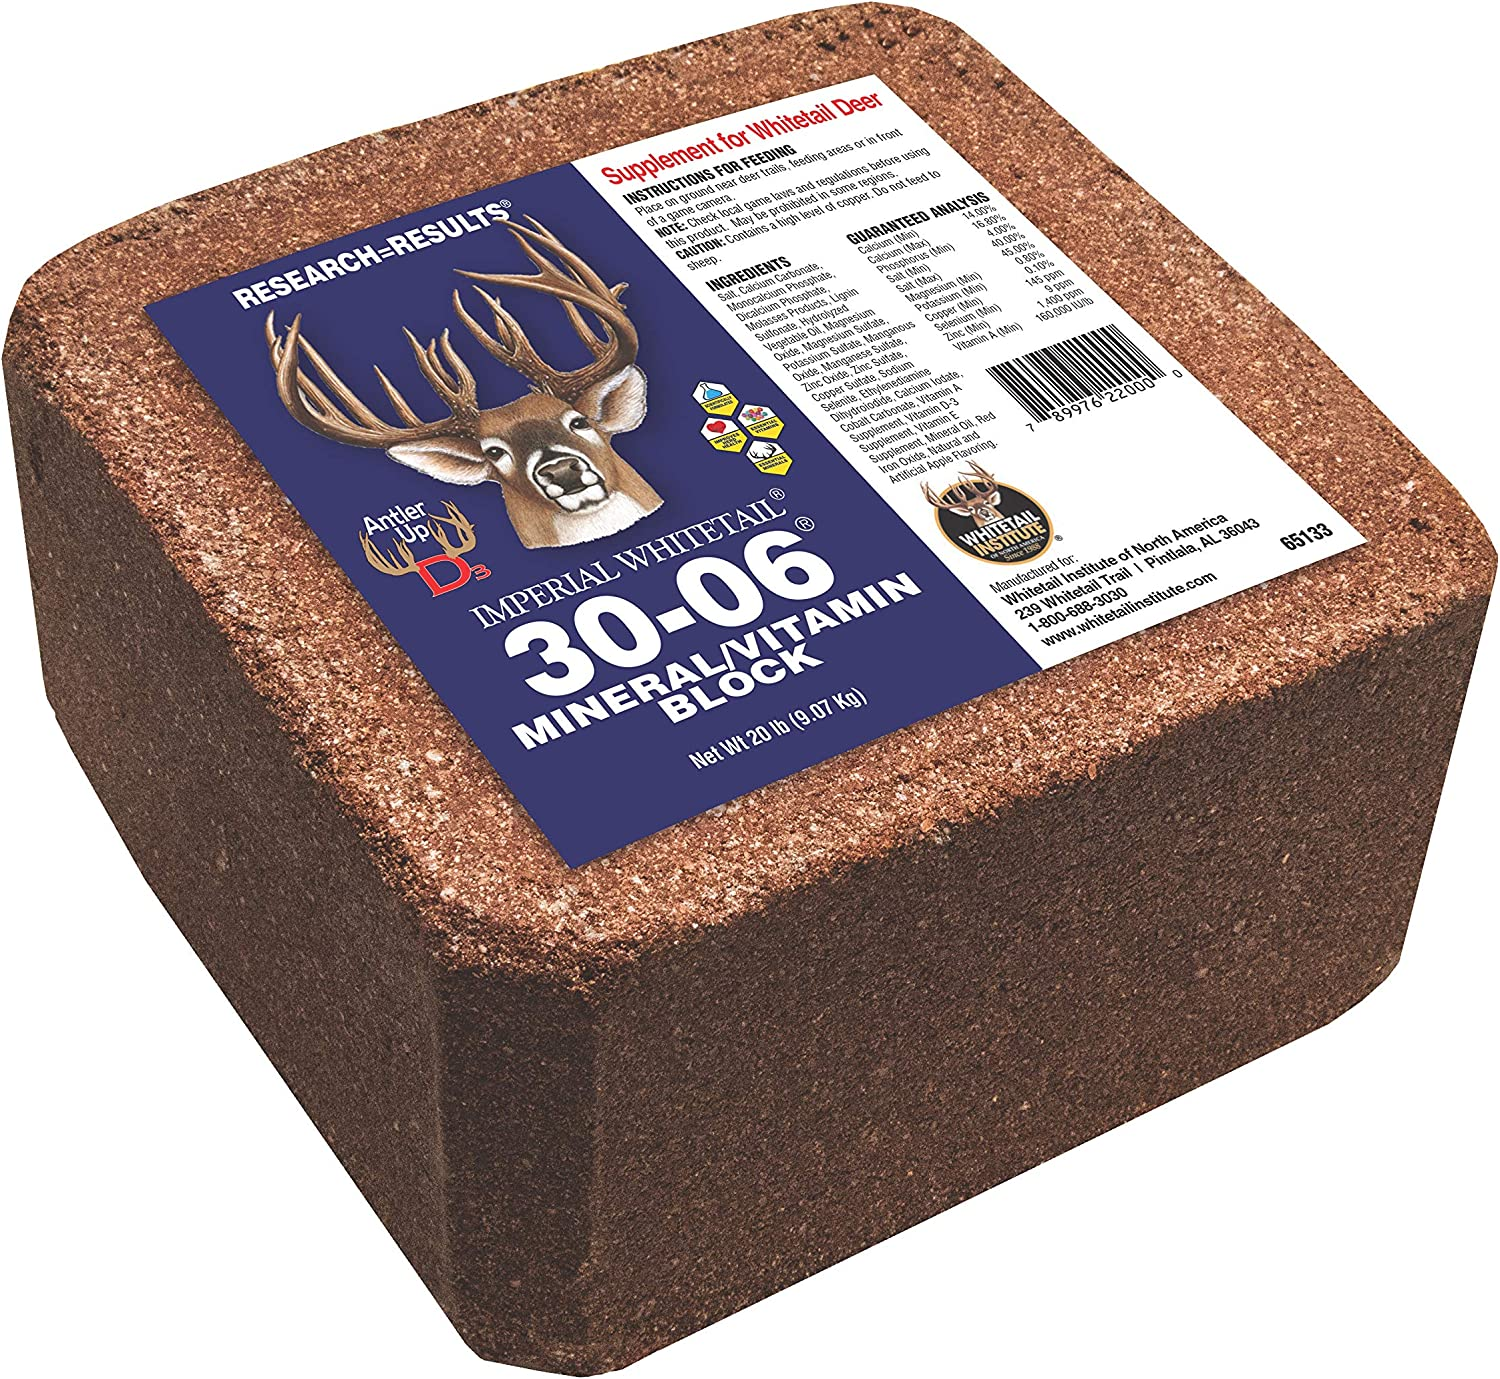 Whitetail Institute 30-06 Deer Feed Mineral Block Supplement, 20 lb